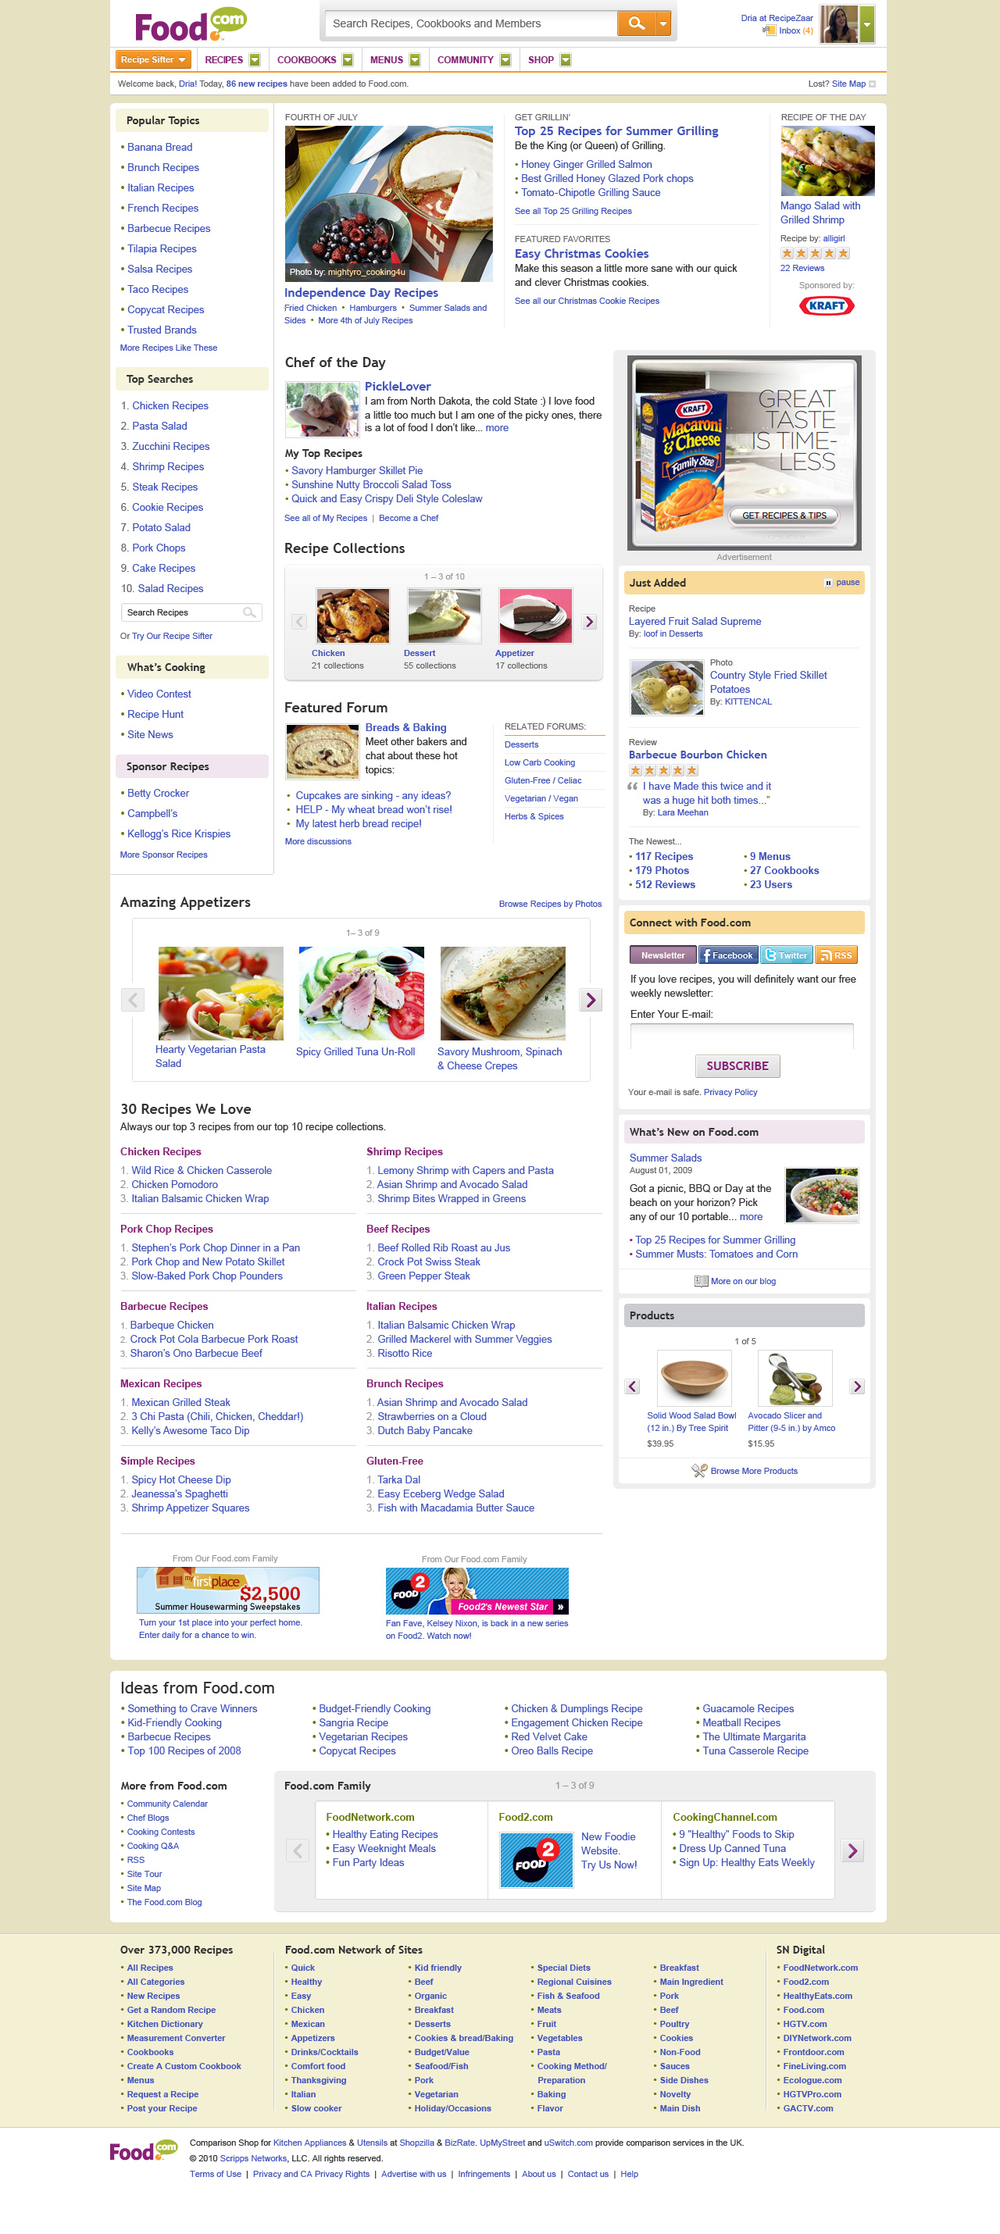 The finished Food.com homepage is intended to balance both the needs of the members while also highlighting valuable search terms.